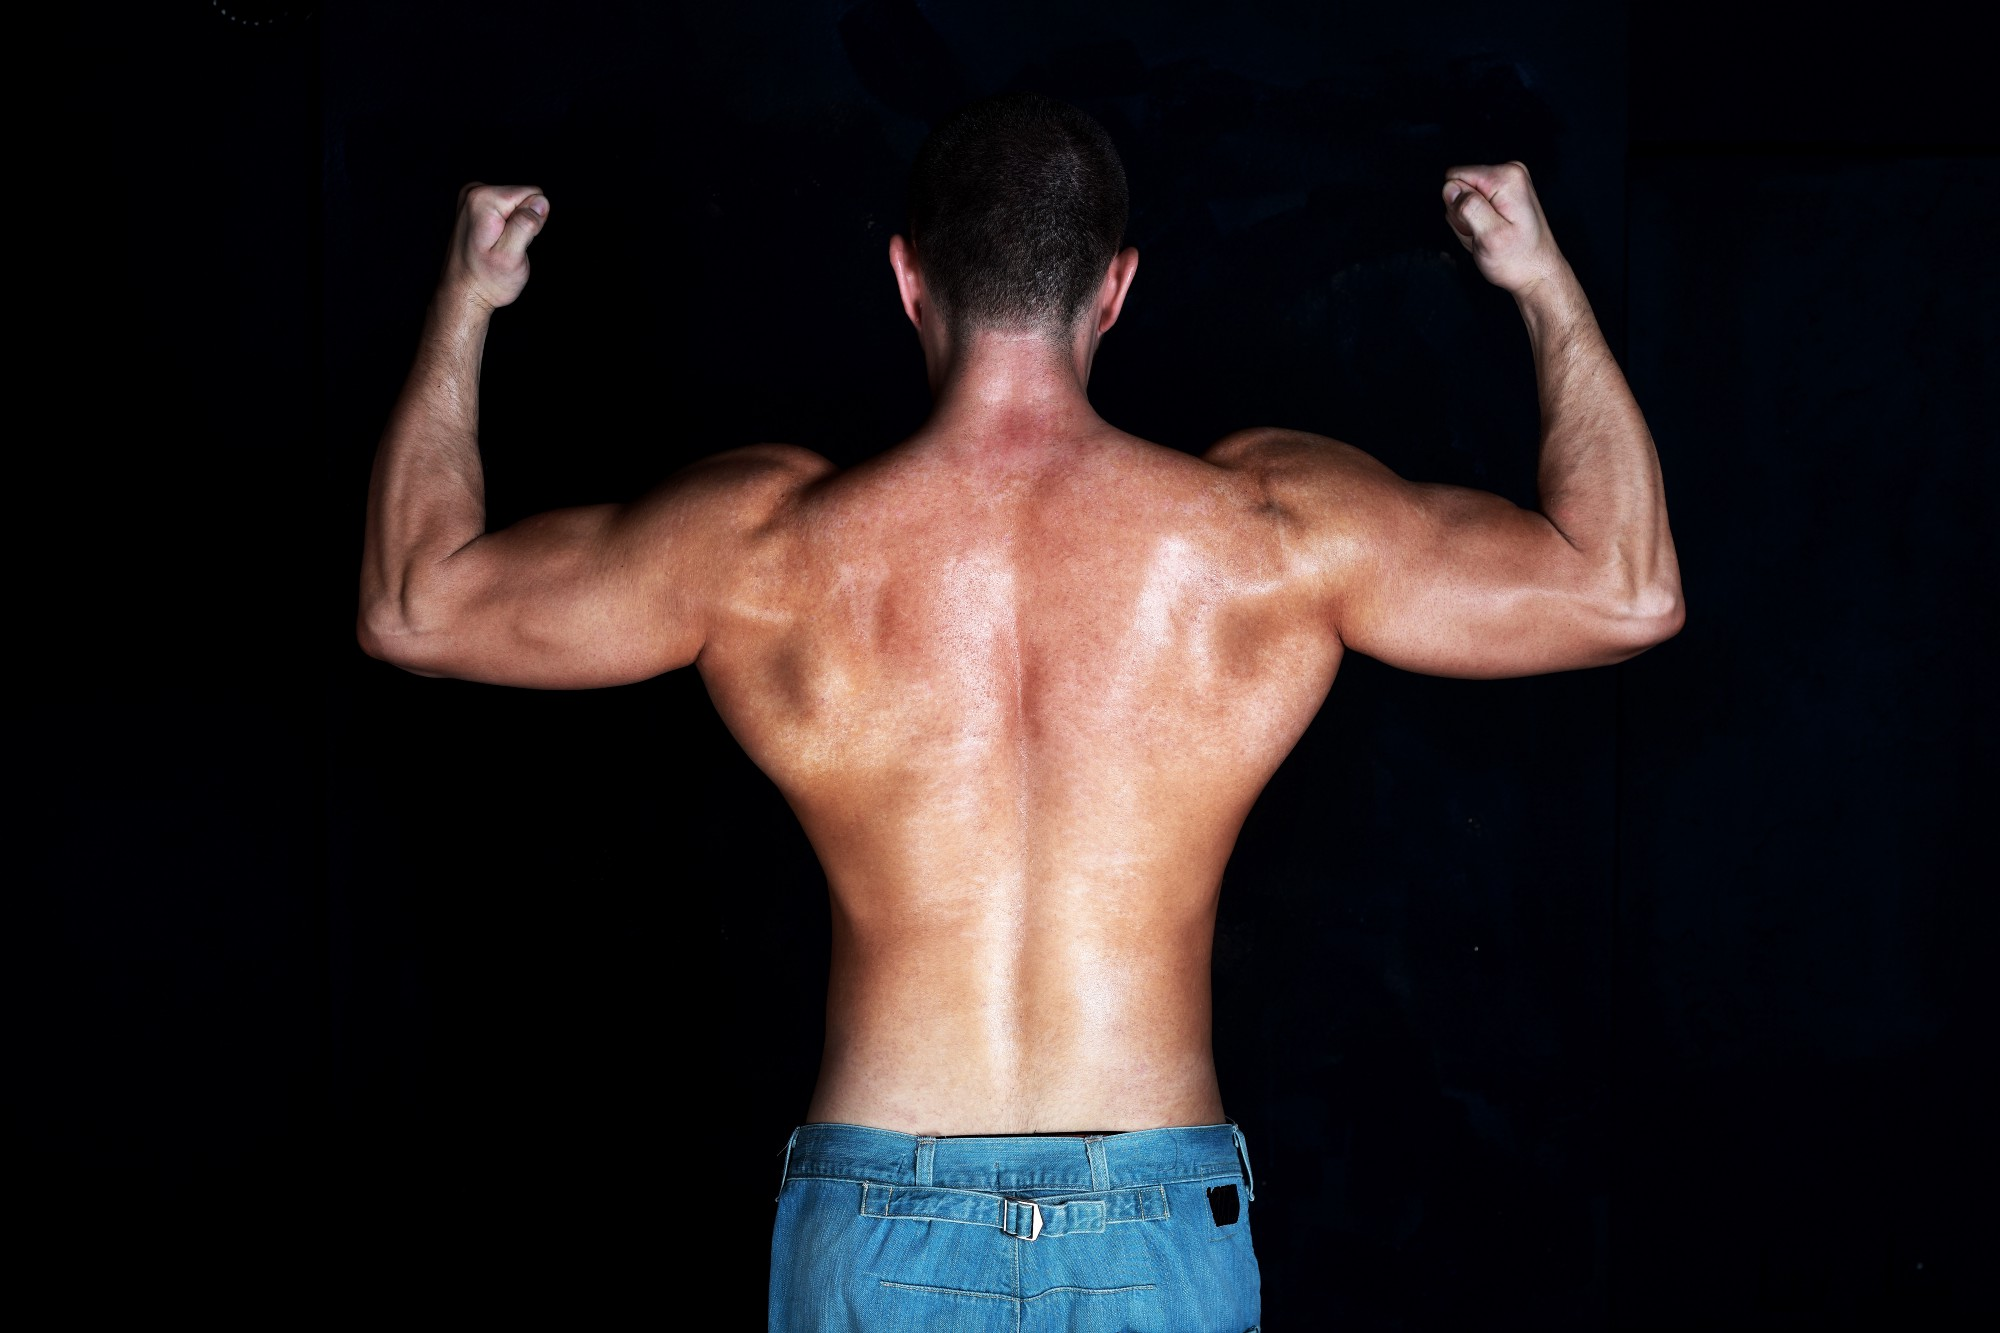 Muscles man flexing his muscles with a dark background